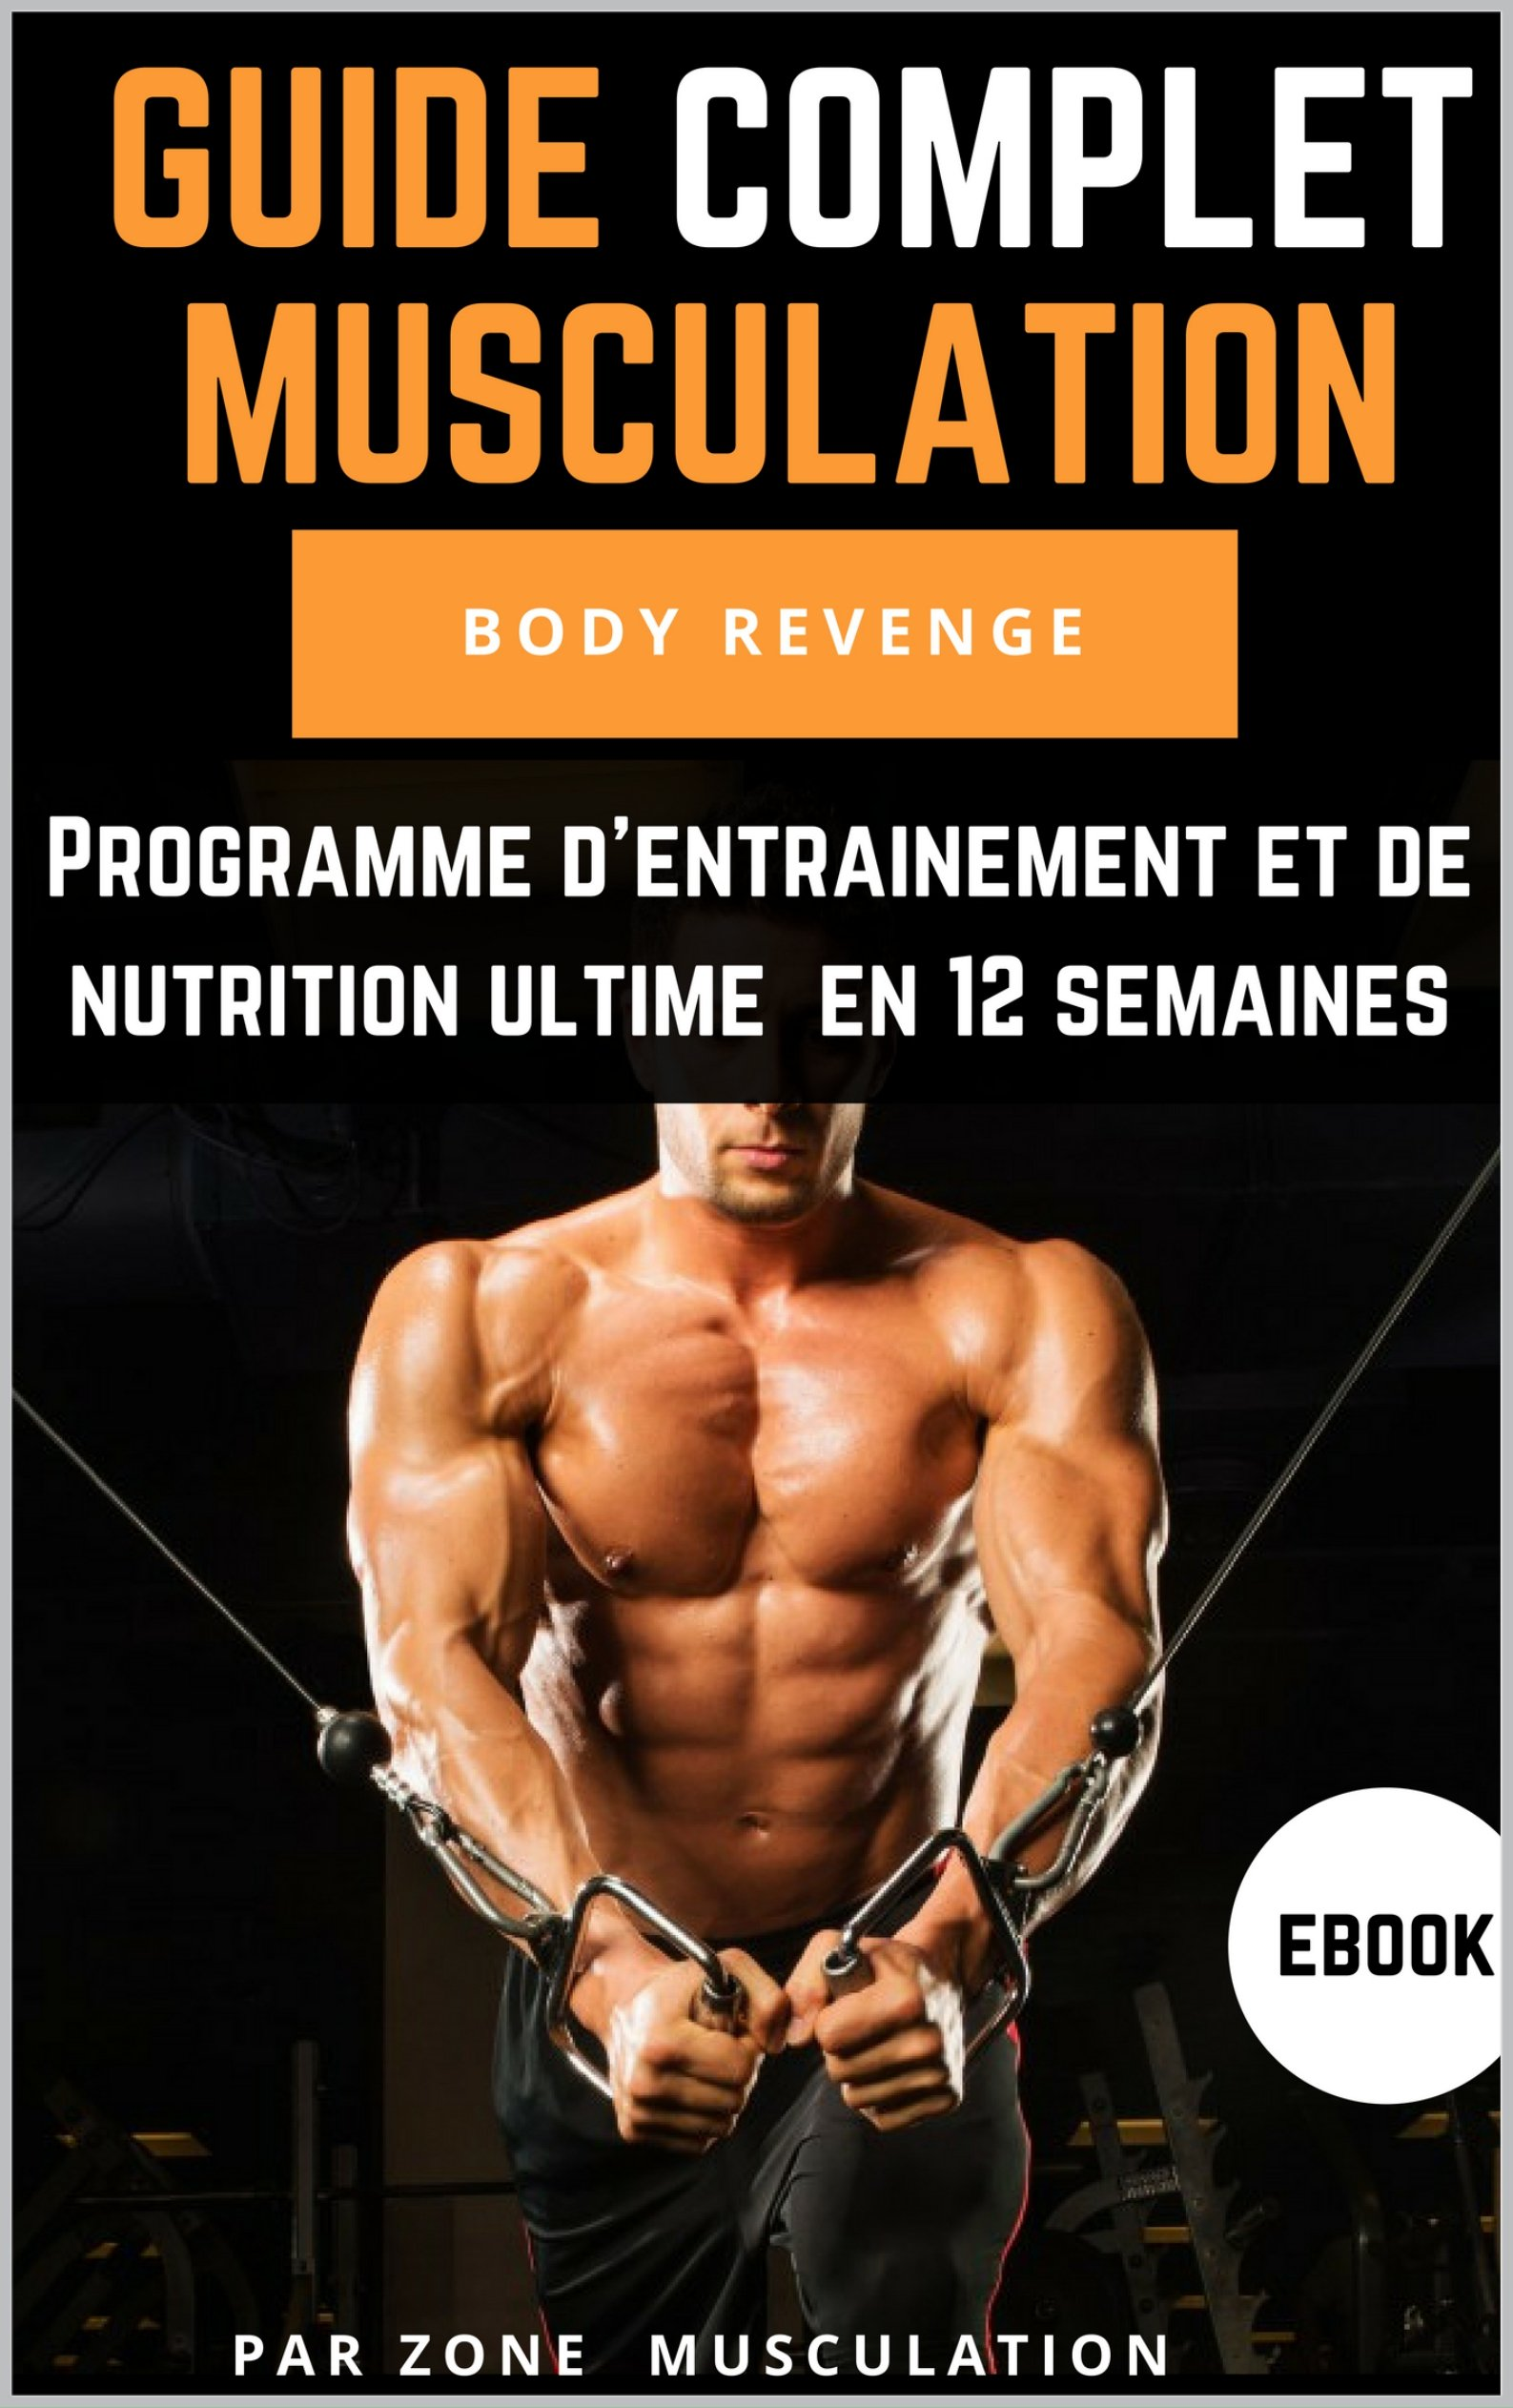 Guide Complet Musculation Body Revenge Telecharger Lire En